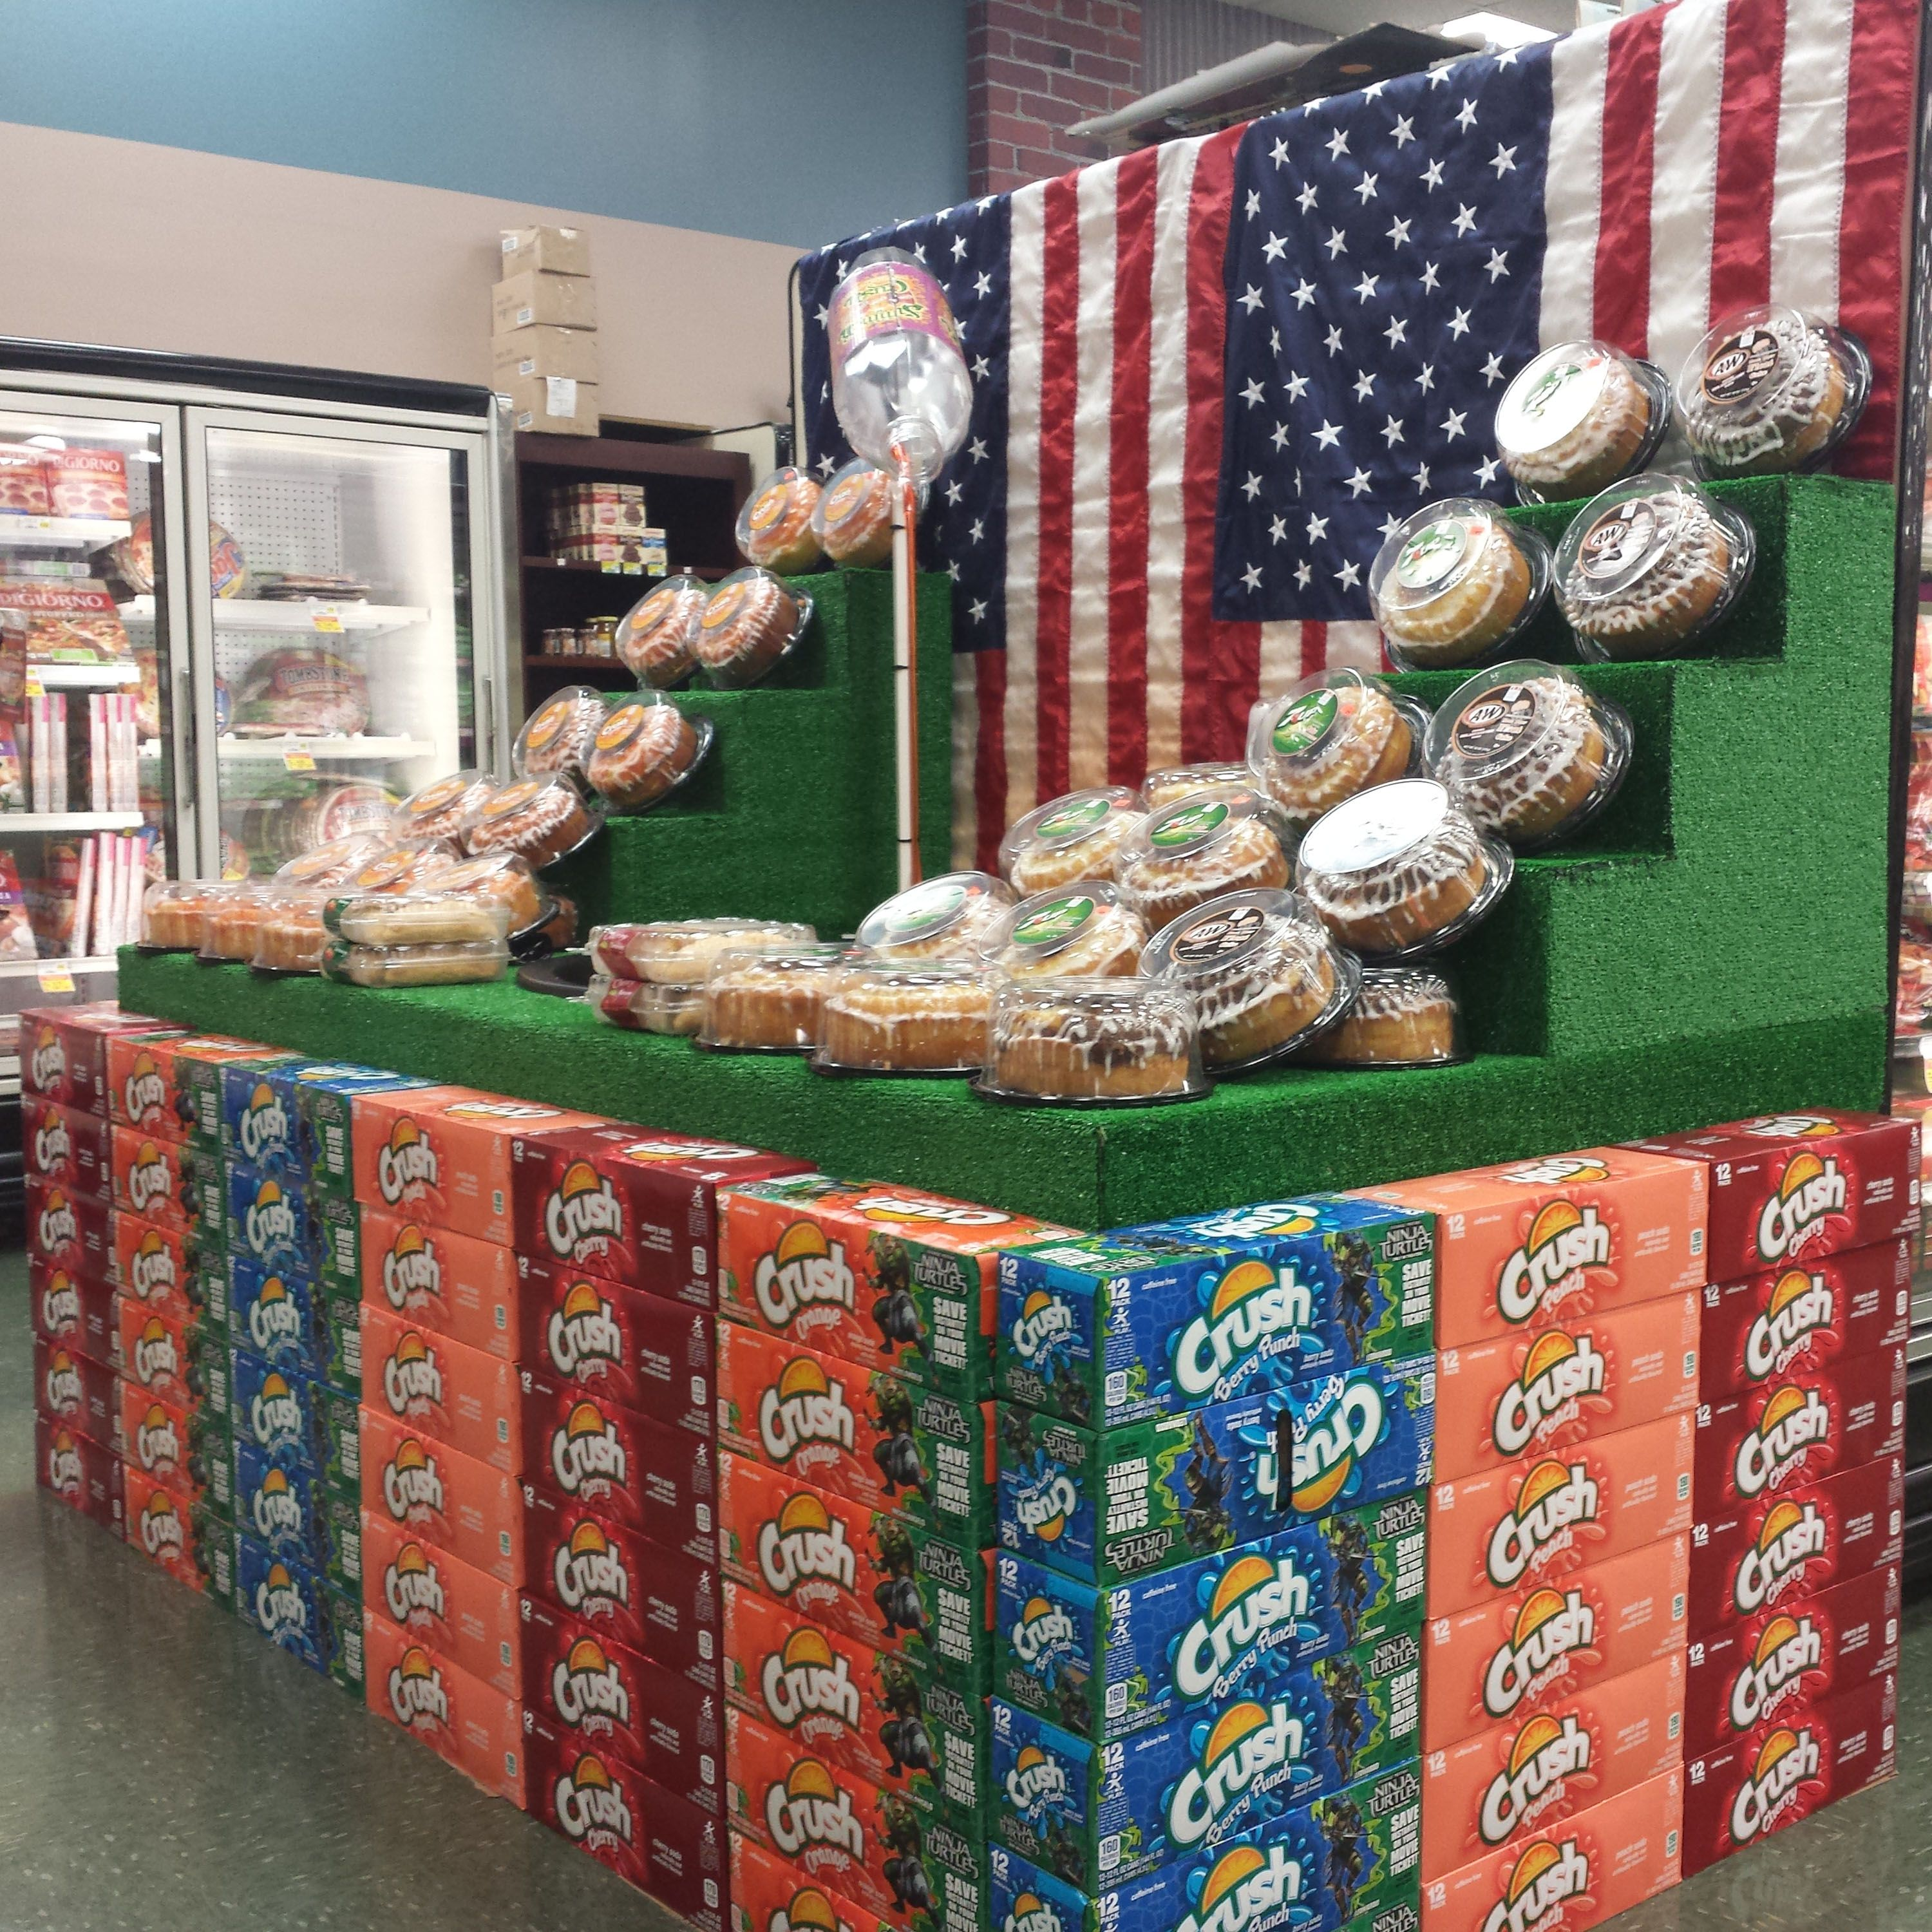 Check out this ALL AMERICAN Soda Spectacular from Piggly Wiggly (AWG #5391) District Manager Carl Whitaker and Store Manager Chris Cleveland. Drop by and see it for yourself at 1010 E. Third Street in Jackson, Georgia. GREAT JOB TEAM! Love the Patriotic Flag!